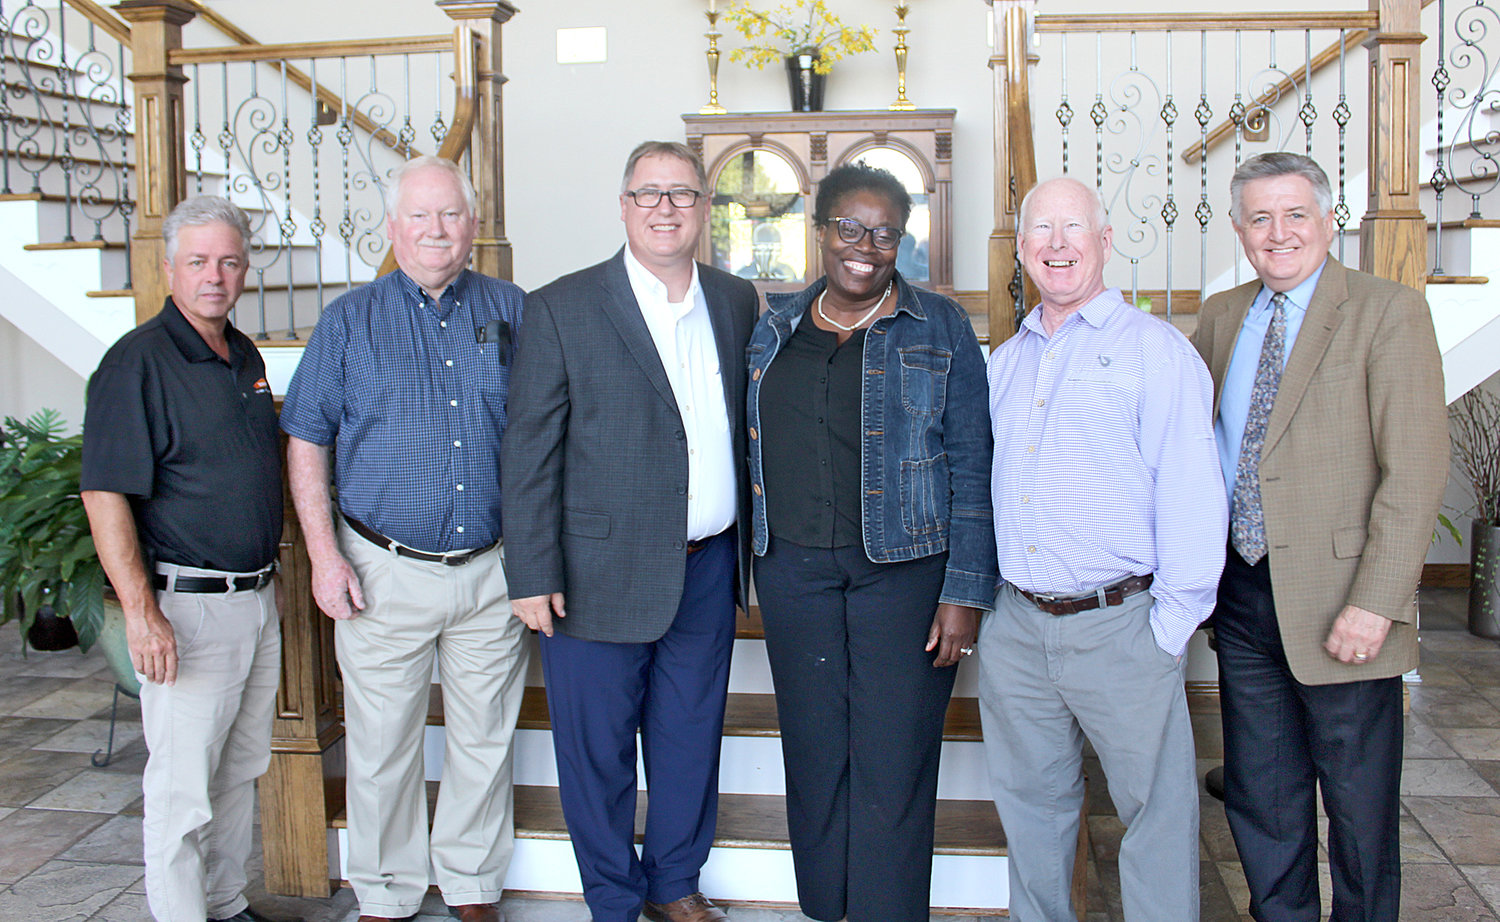 CATHERINE TURKETT, mother of Ola Akanle, accepts a $18,450 donation on behalf of her son, a former Bachman Academy student. He is currently attending a similar school in Boston. From left are board members Jeff Gregory, Ken Weller, director Mark Frizzell, Catherine Turkett and board members Mike Sikes and Jimmy Dupree.